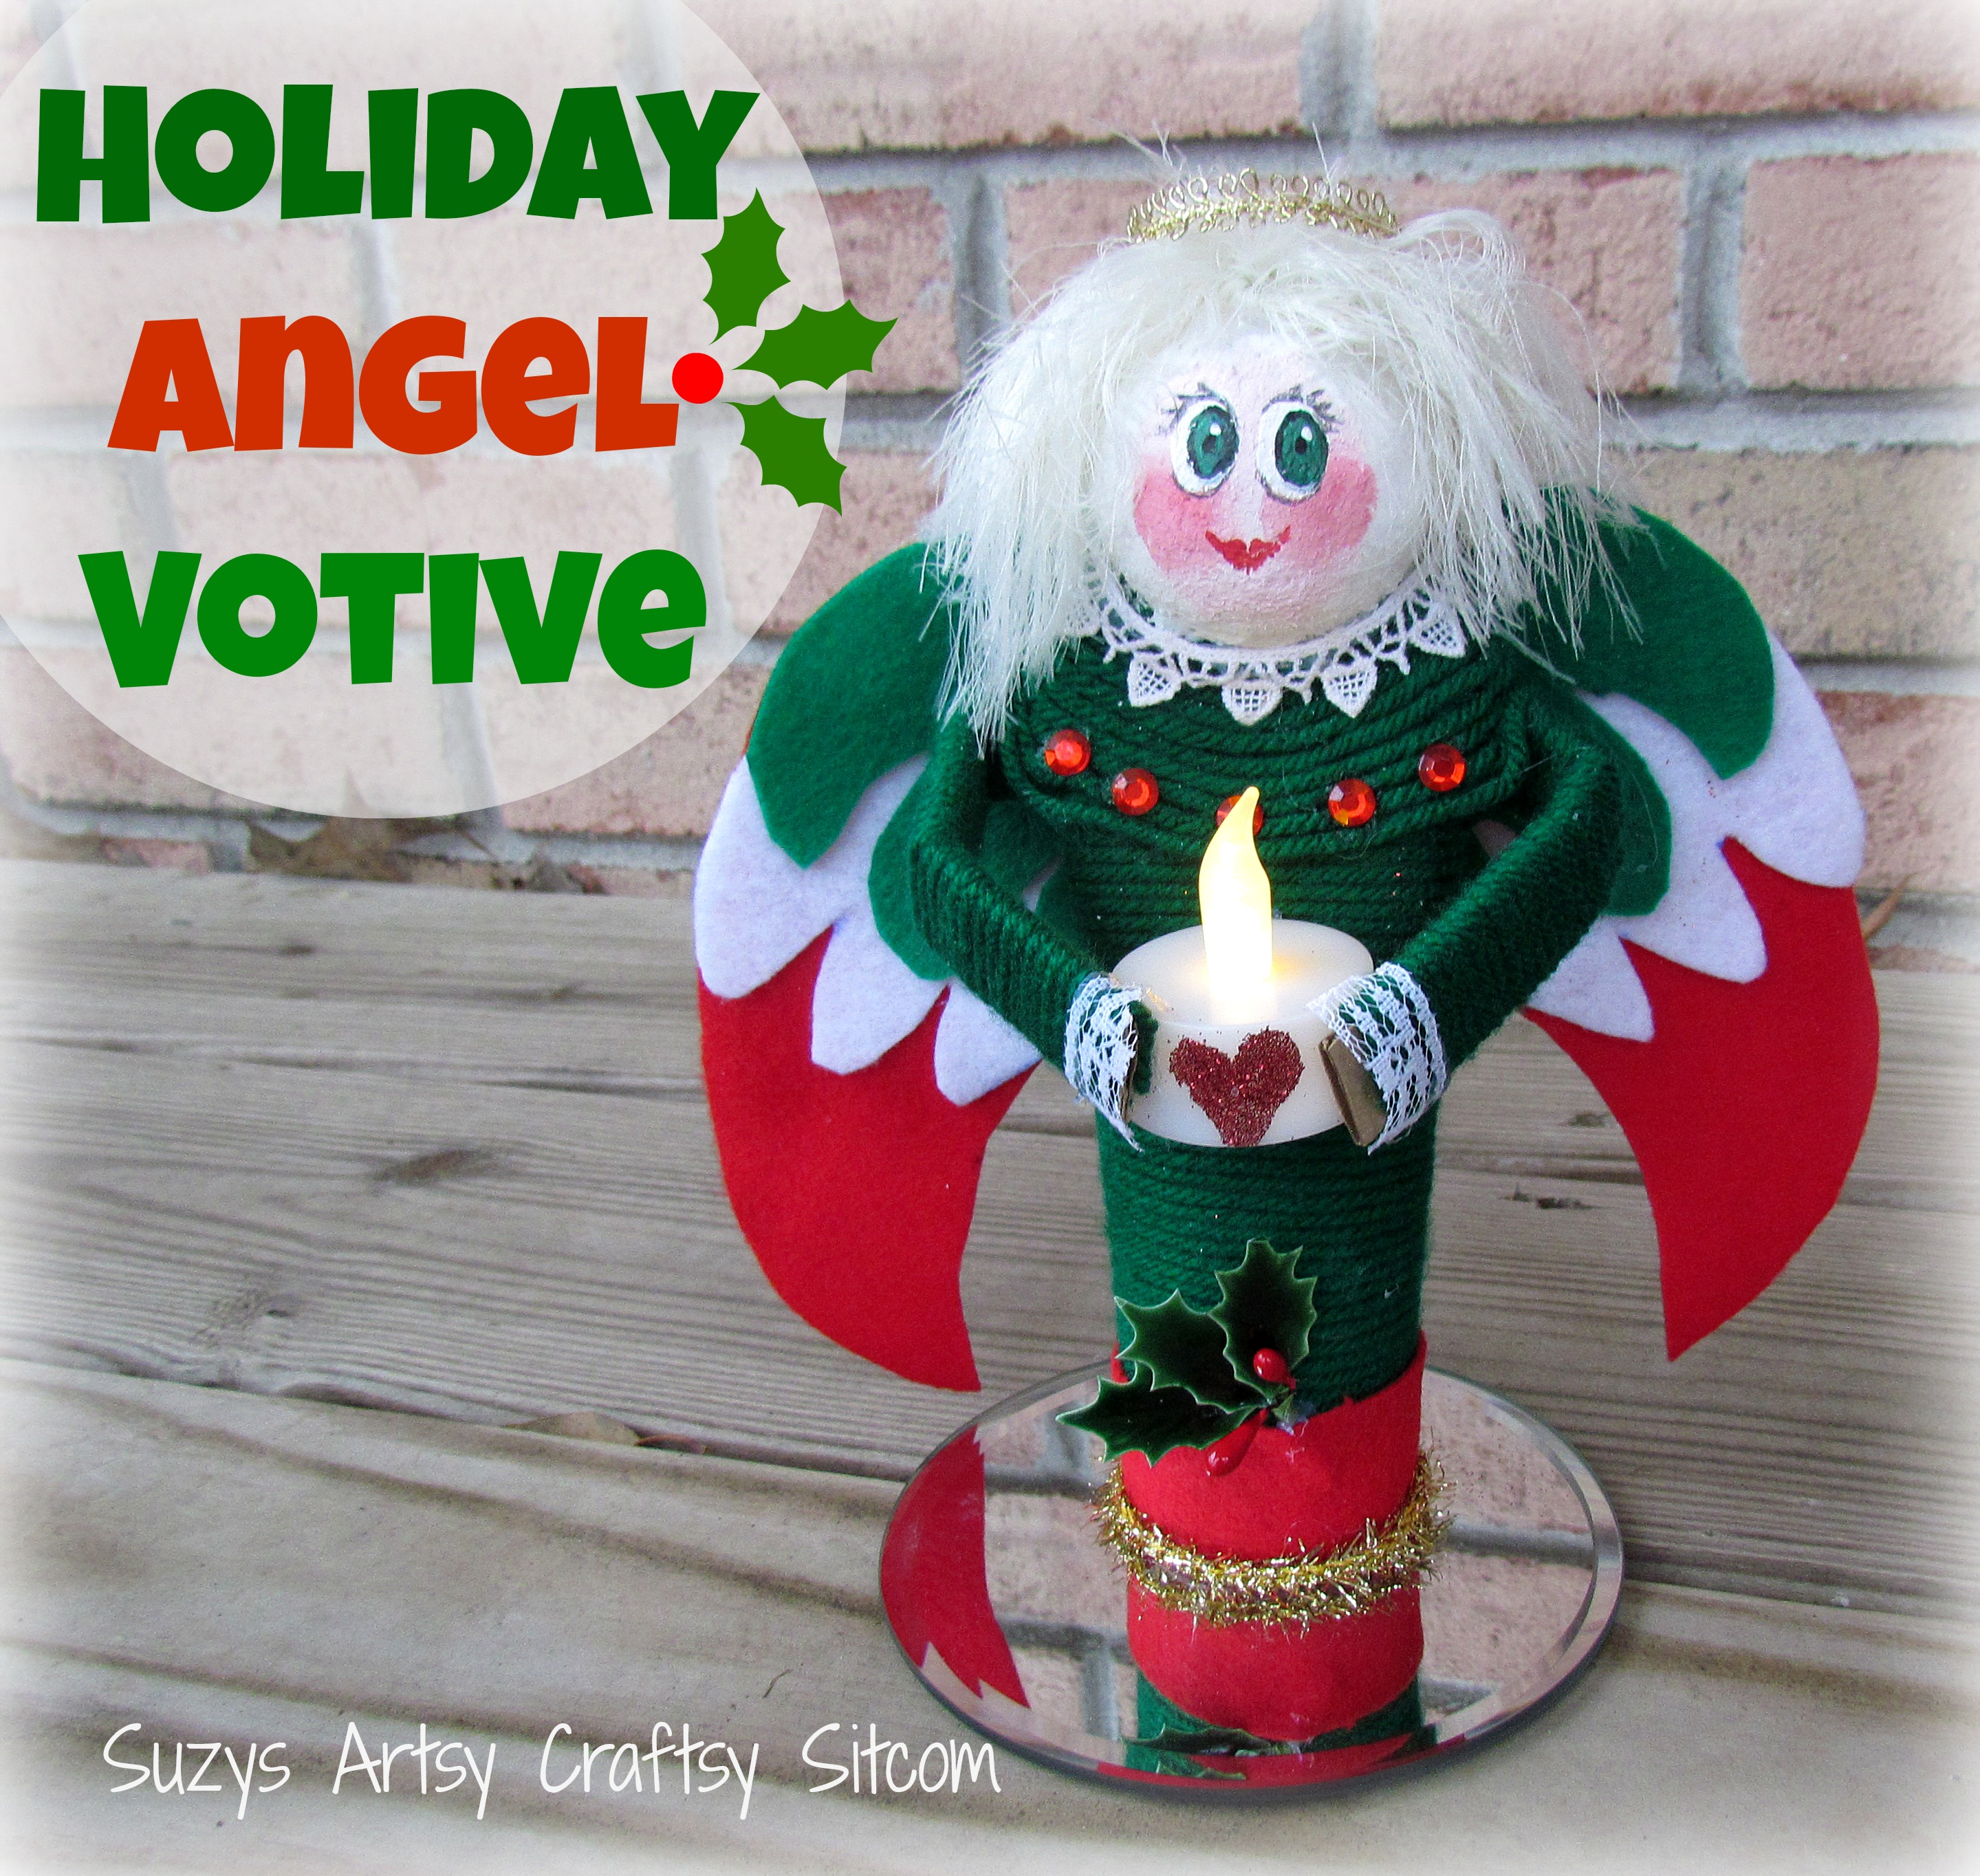 Cute santa claus towel christmas decor - Cute Diy Angel Votives Made From Recycled Paper Towel Tubes